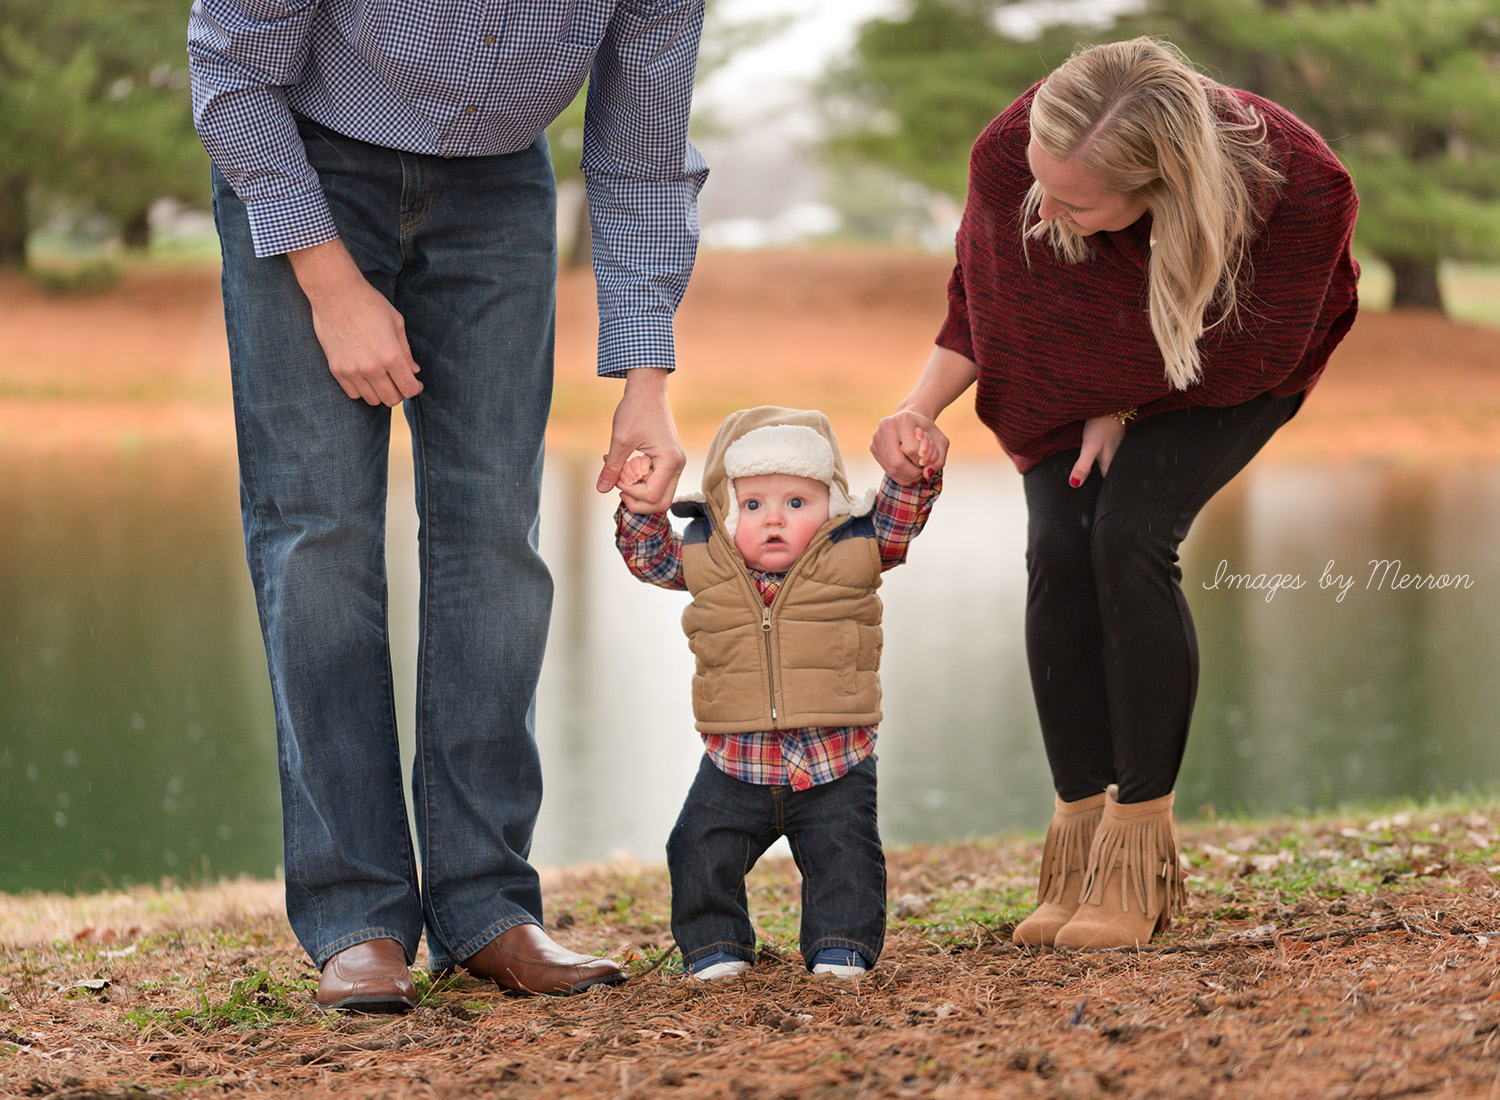 Mom & Dad helping baby stand on cold, drizzly day near pond